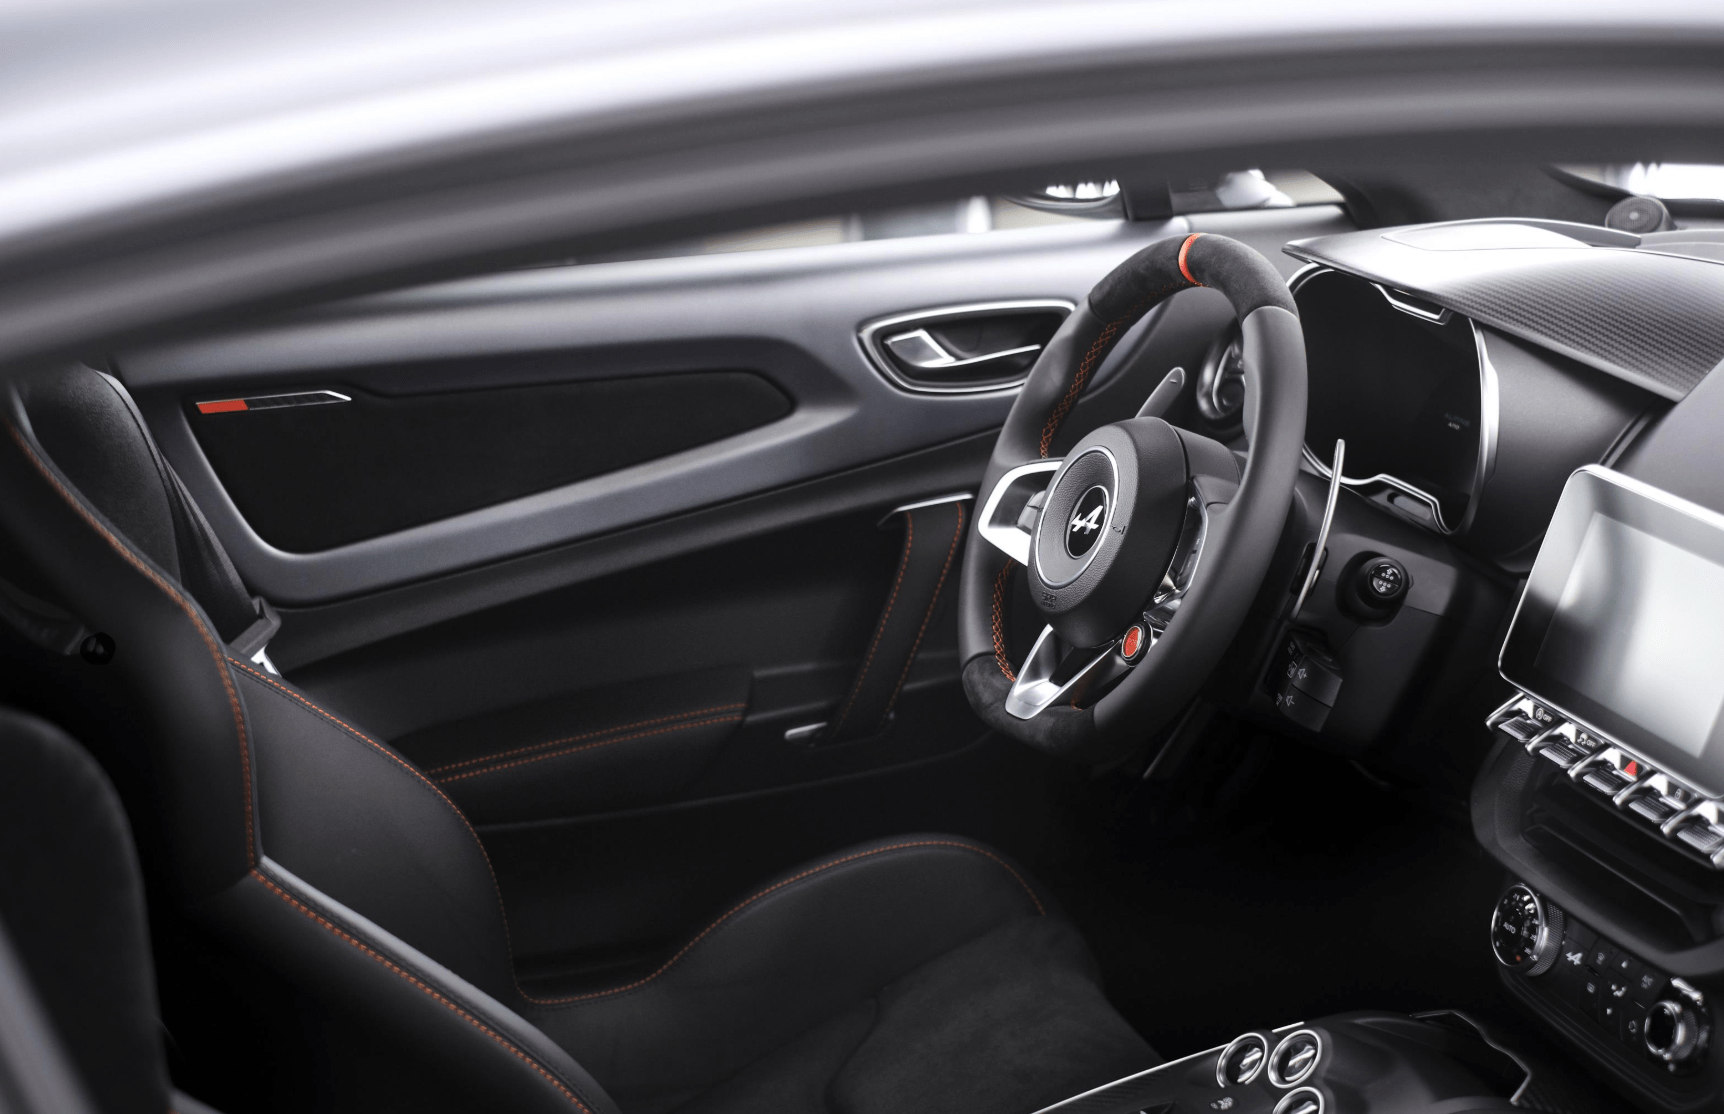 alpine a110s sports car interior